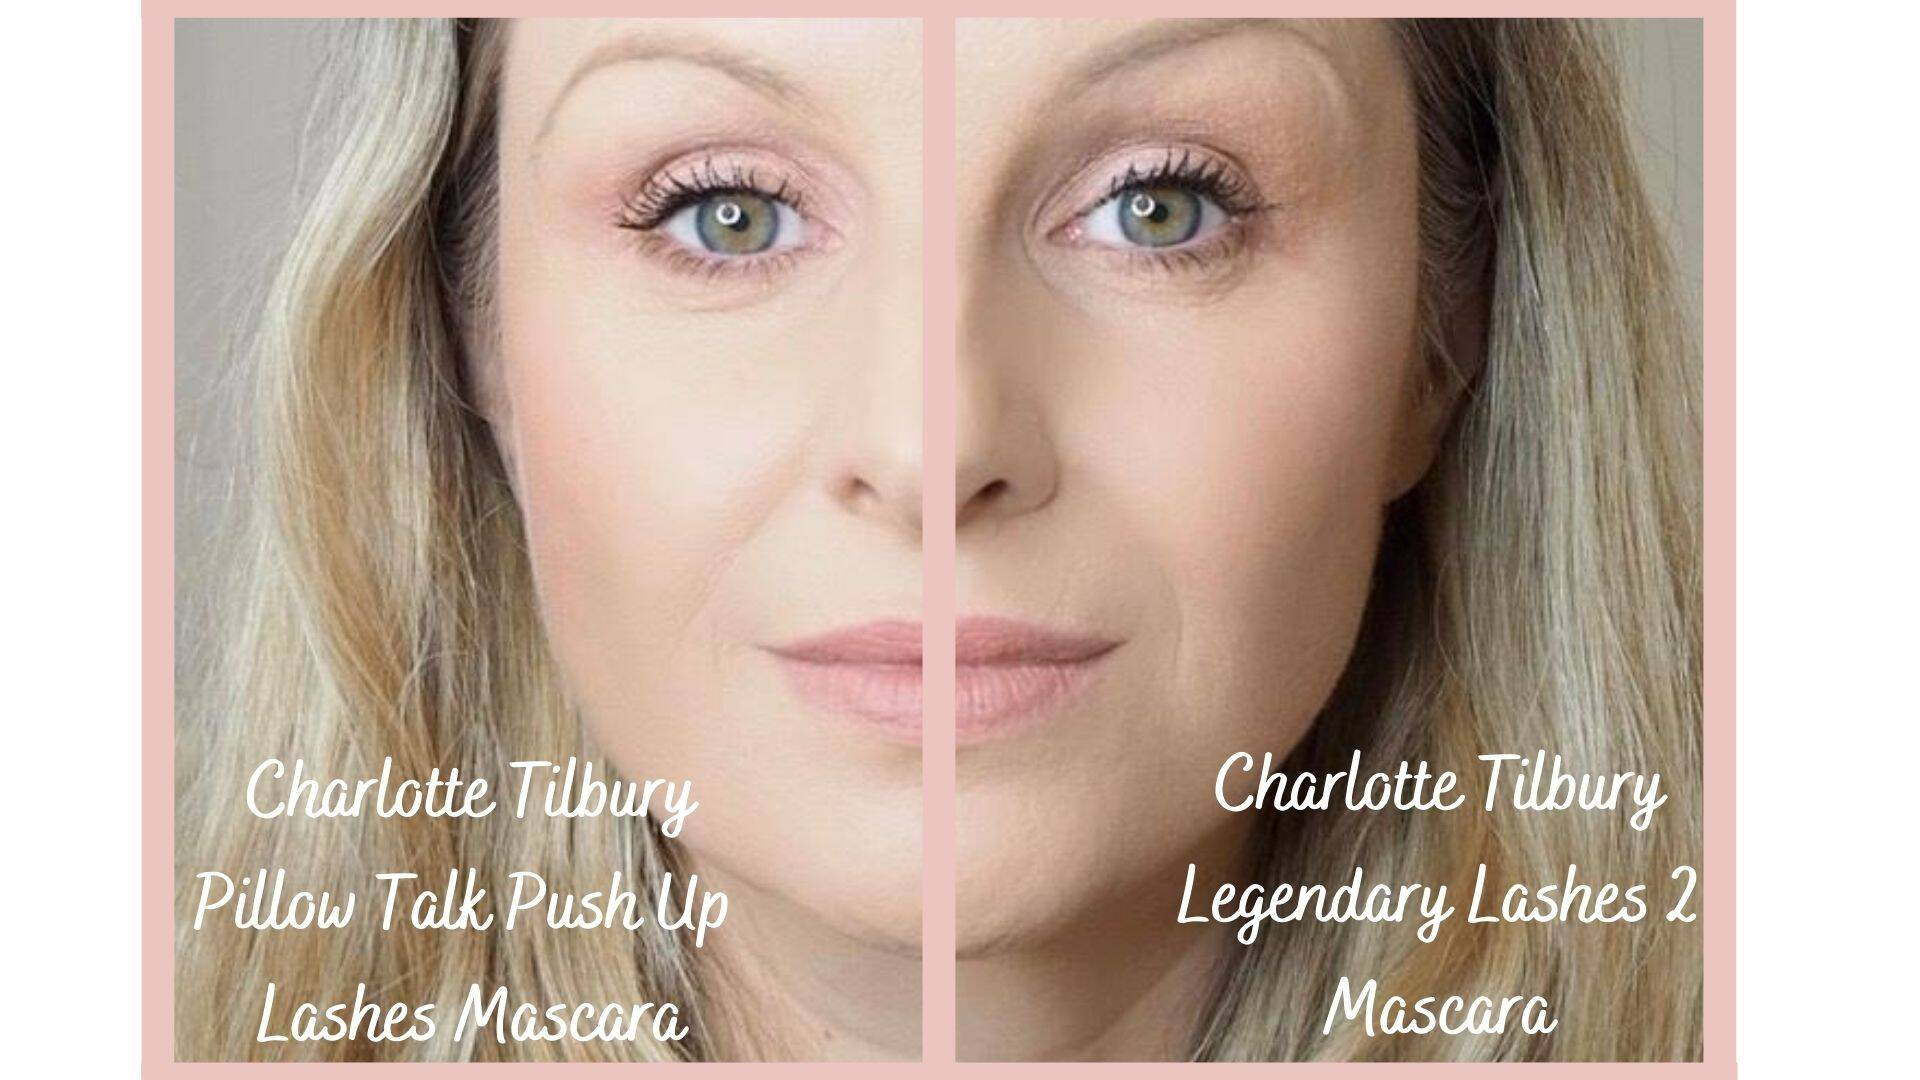 Charlotte Tilbury Pillow Talk Push Up Lashes Mascara vs Legendary Lashes 2 Mascara